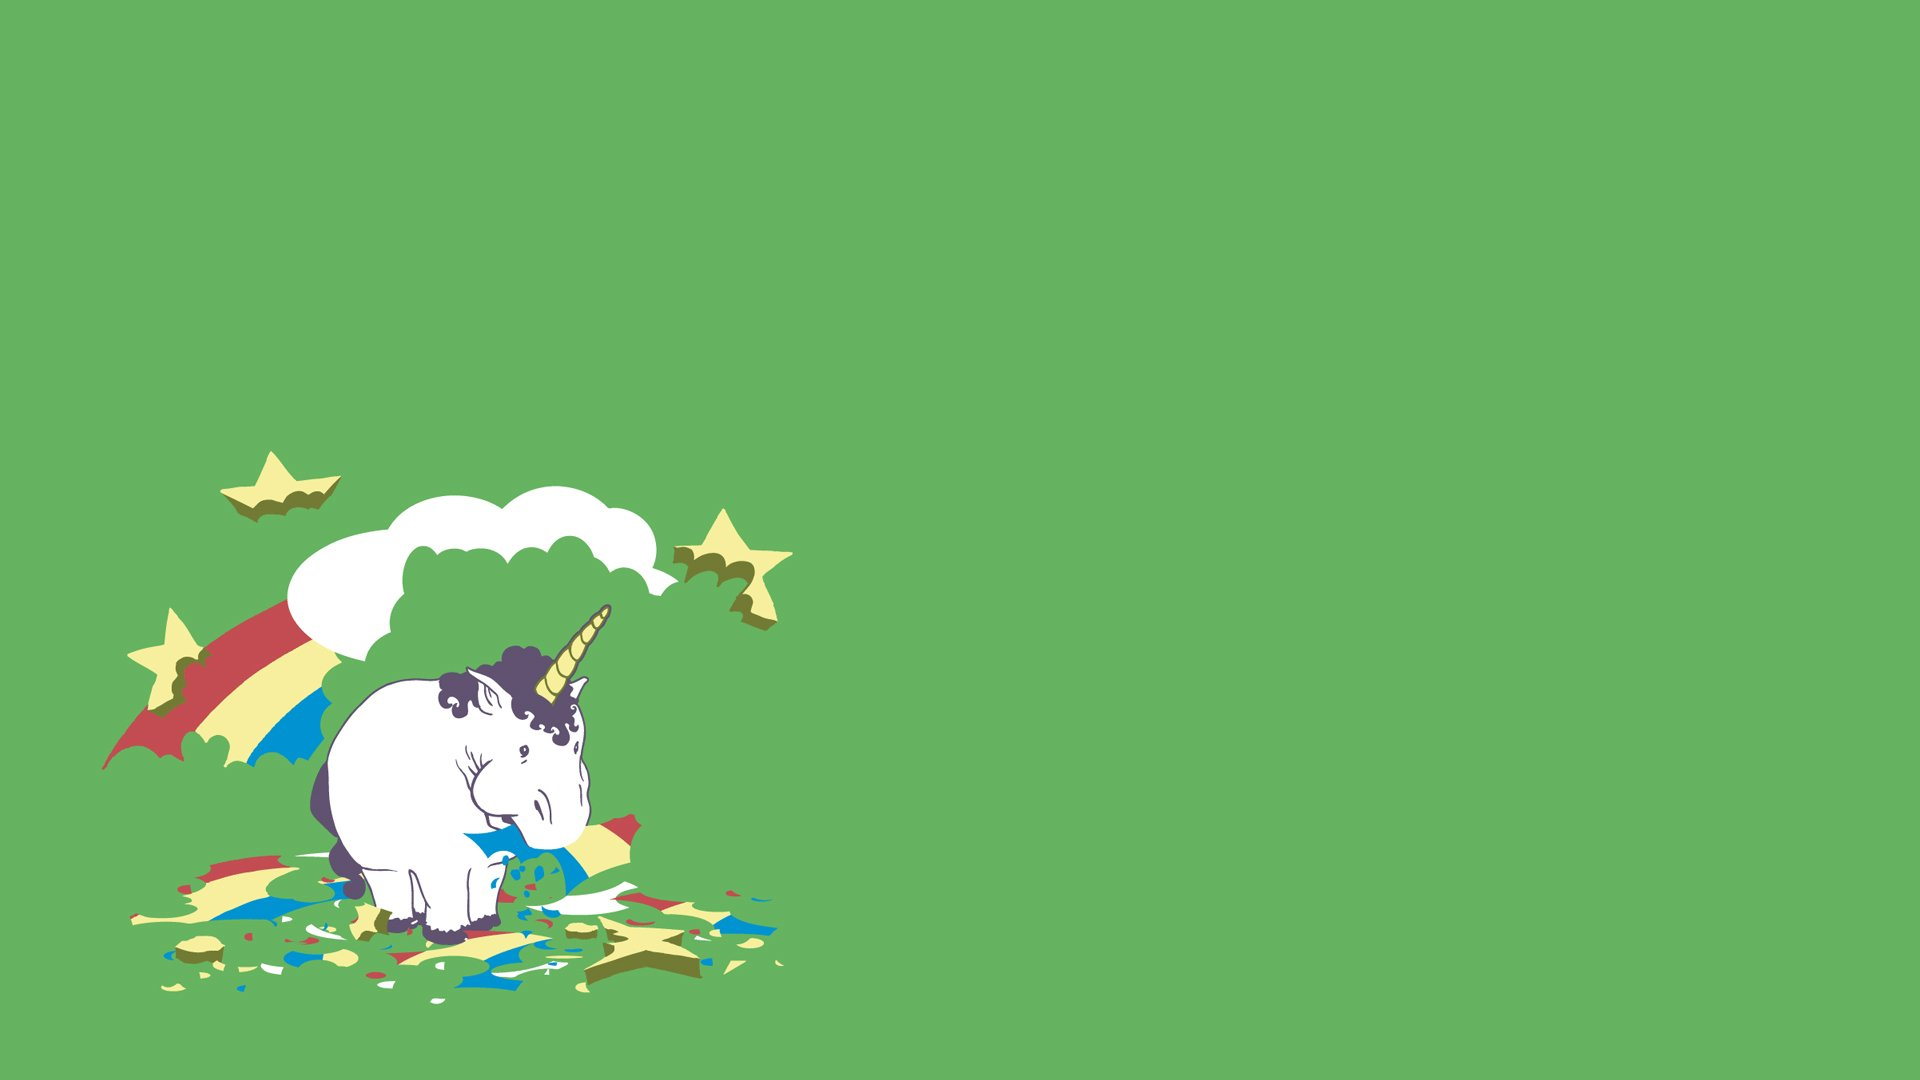 Hd wallpaper unicorn - Hd Wallpaper Background Id 317282 1920x1080 Humor Unicorn